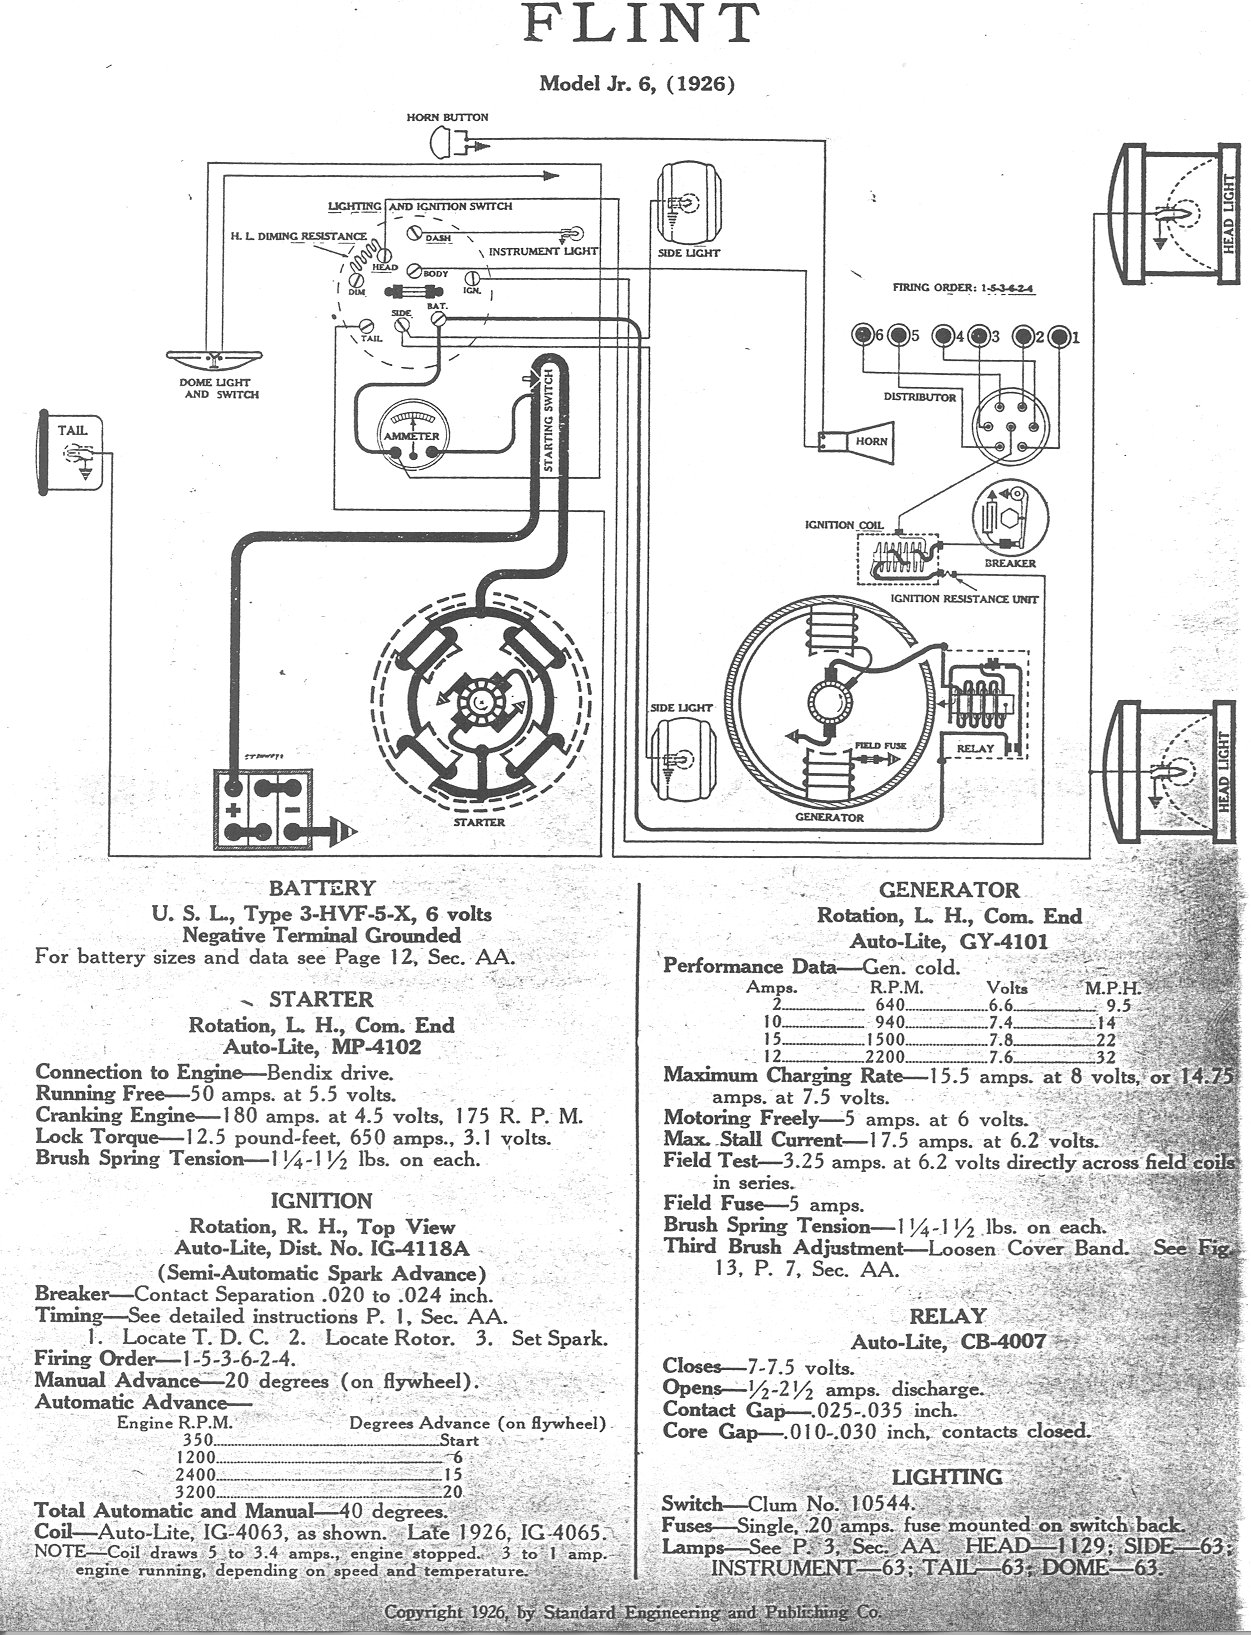 Wiring Diagrams 1922 1929 12 Volt Dome Light Diagram 1926 Jr Six Cylinder